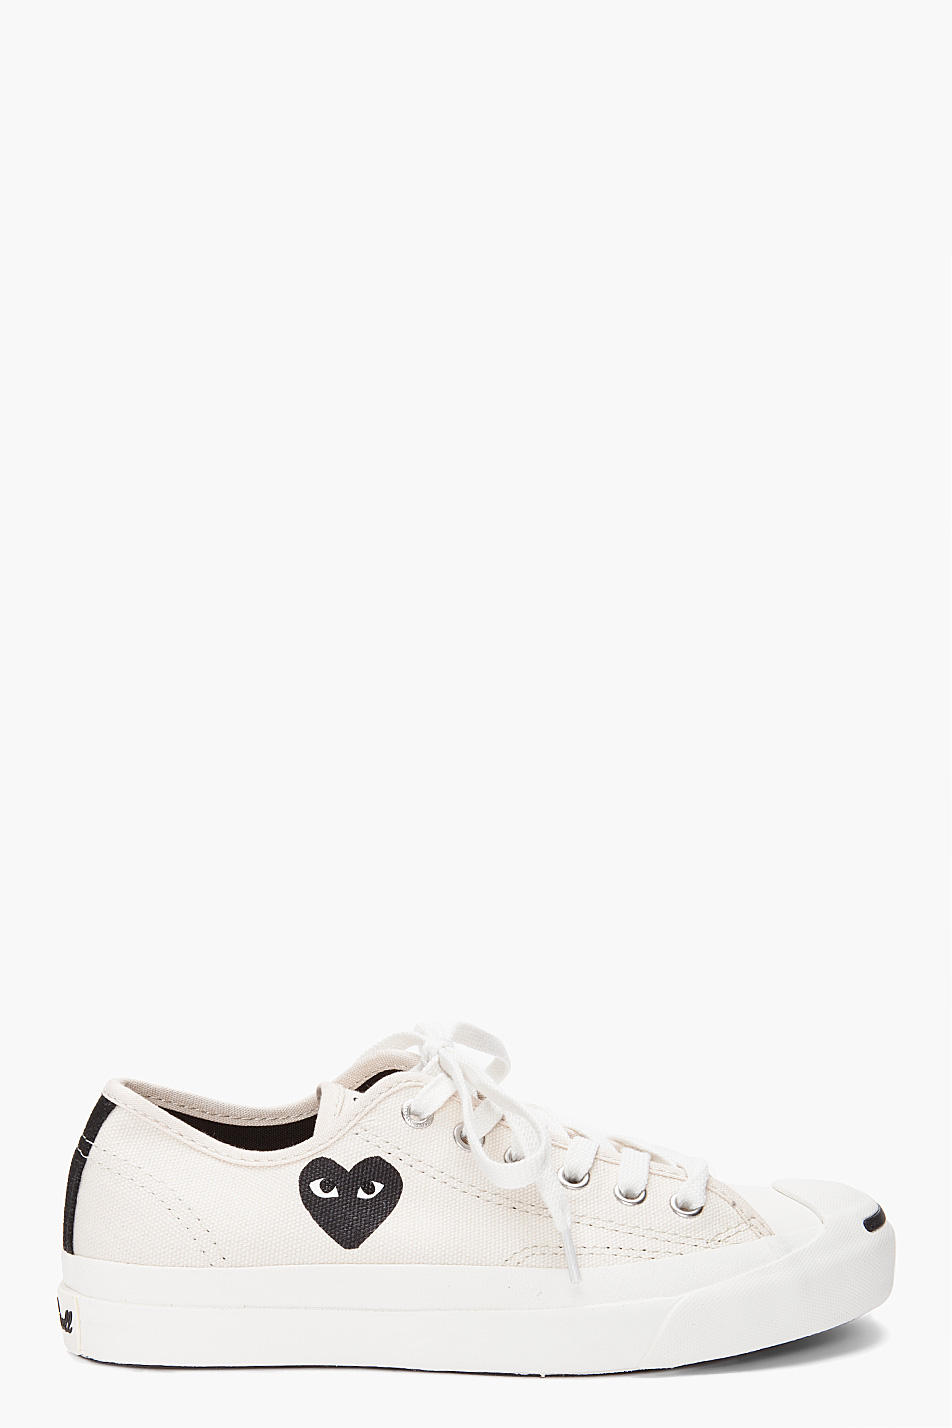 0da6dd1f397c Lyst - Play Comme des Garçons Converse Jack Purcell Sneakers in White